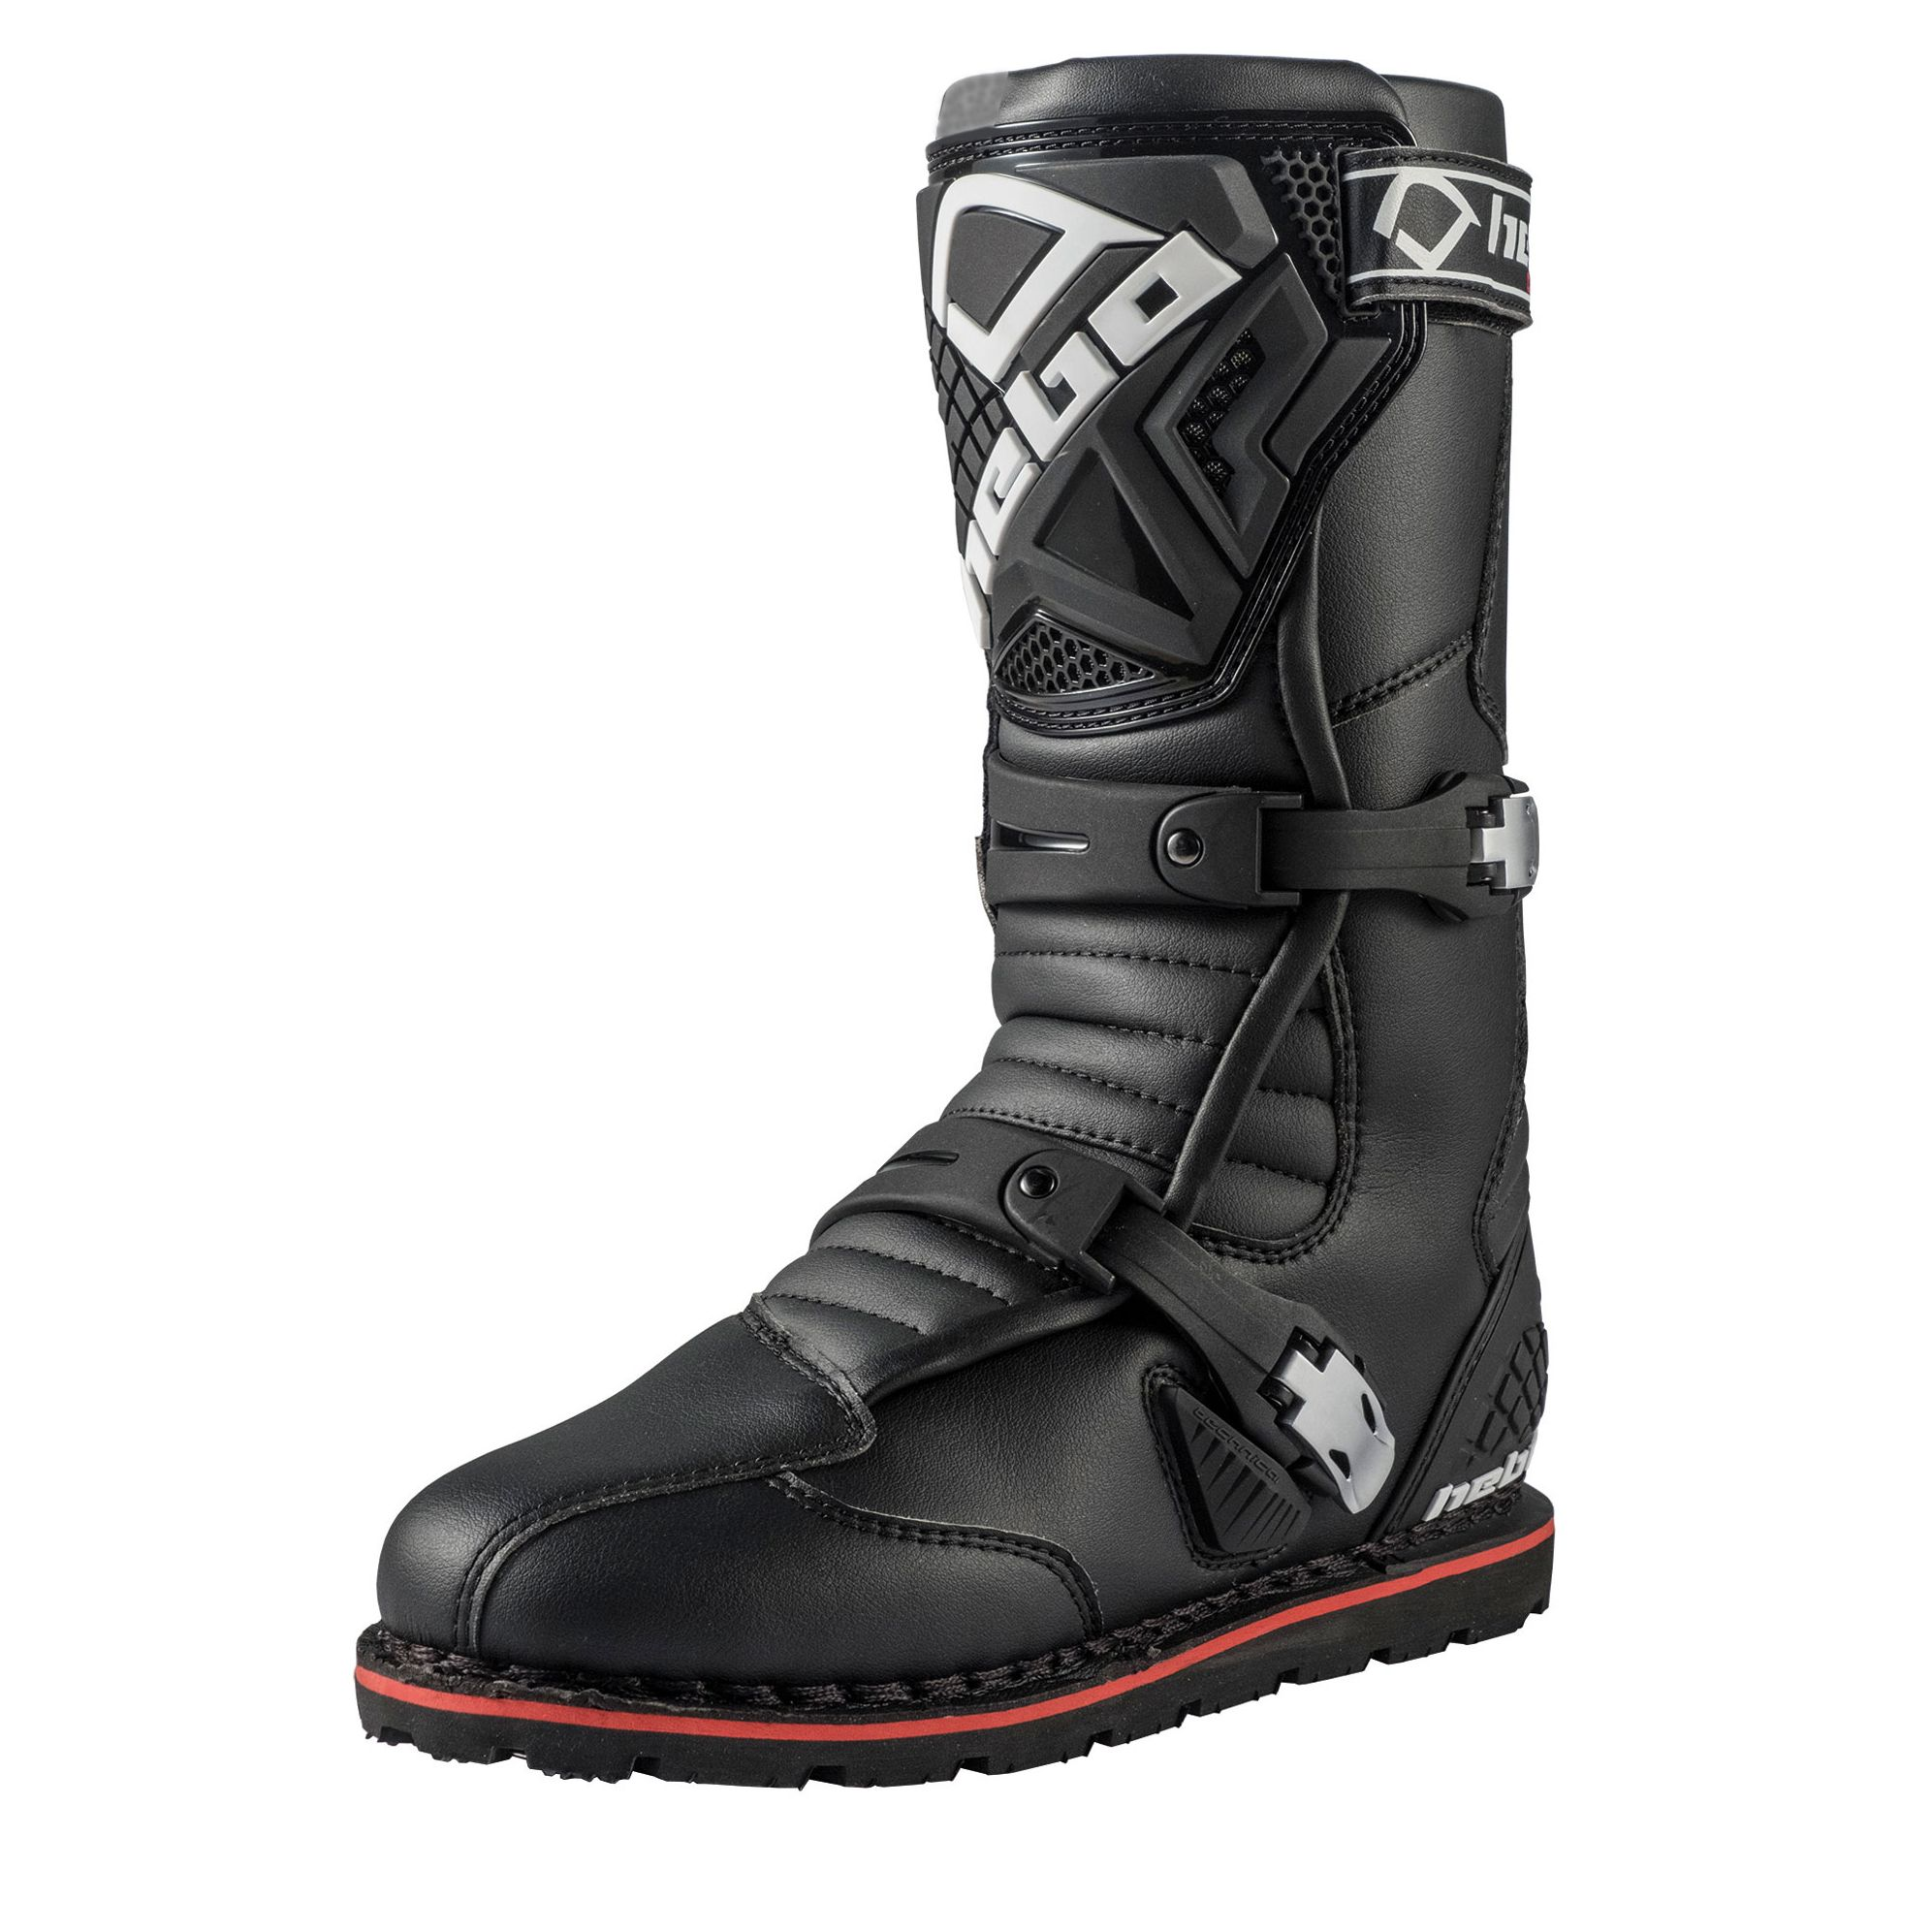 Bottes cross Hebo TECHNICAL 2.0 LEATHER BLACK 2020